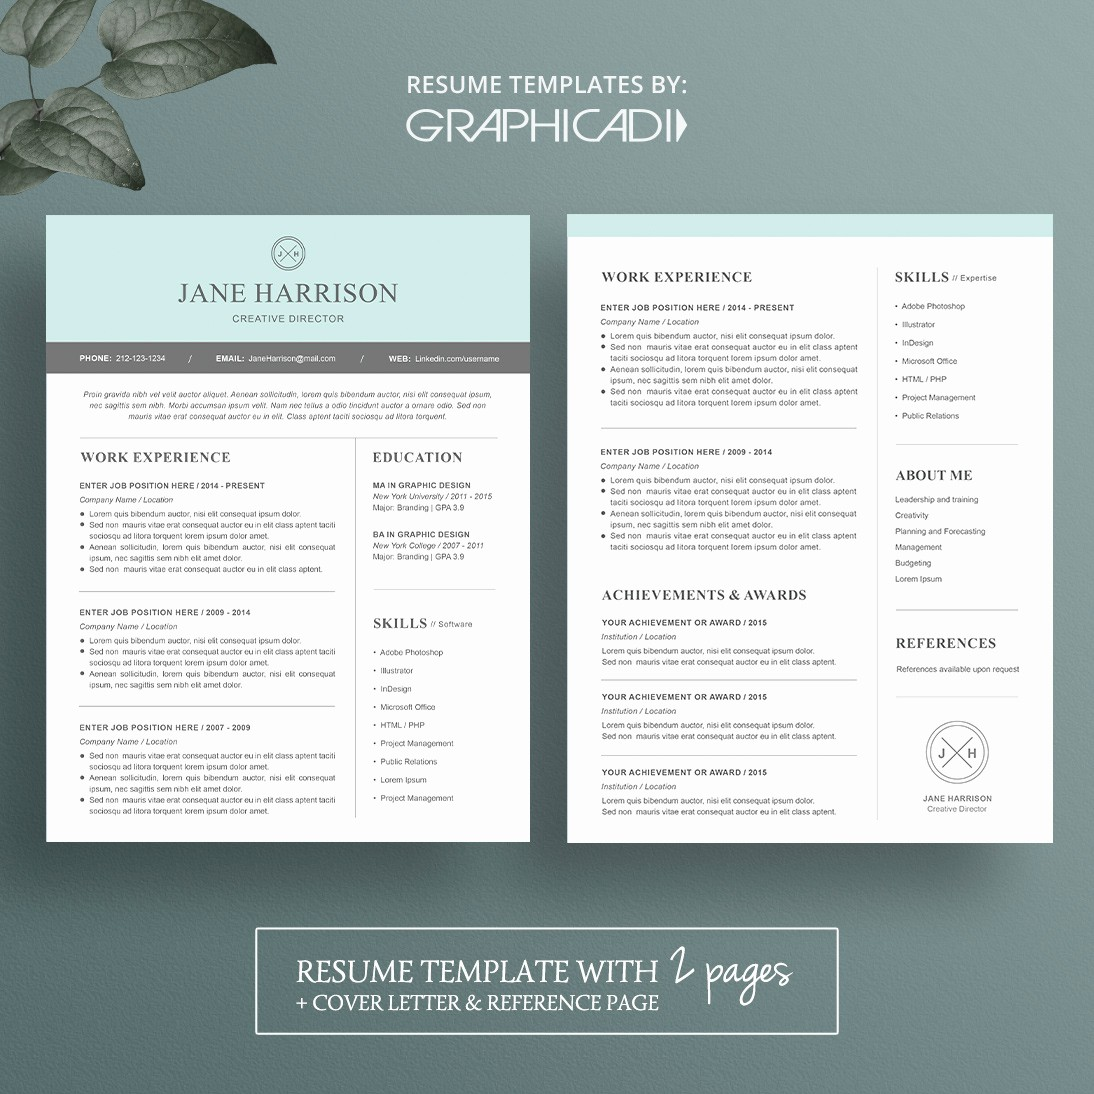 Resume Reference Template Microsoft Word Best Of Modern Resume Template for Microsoft Word Limeresumes